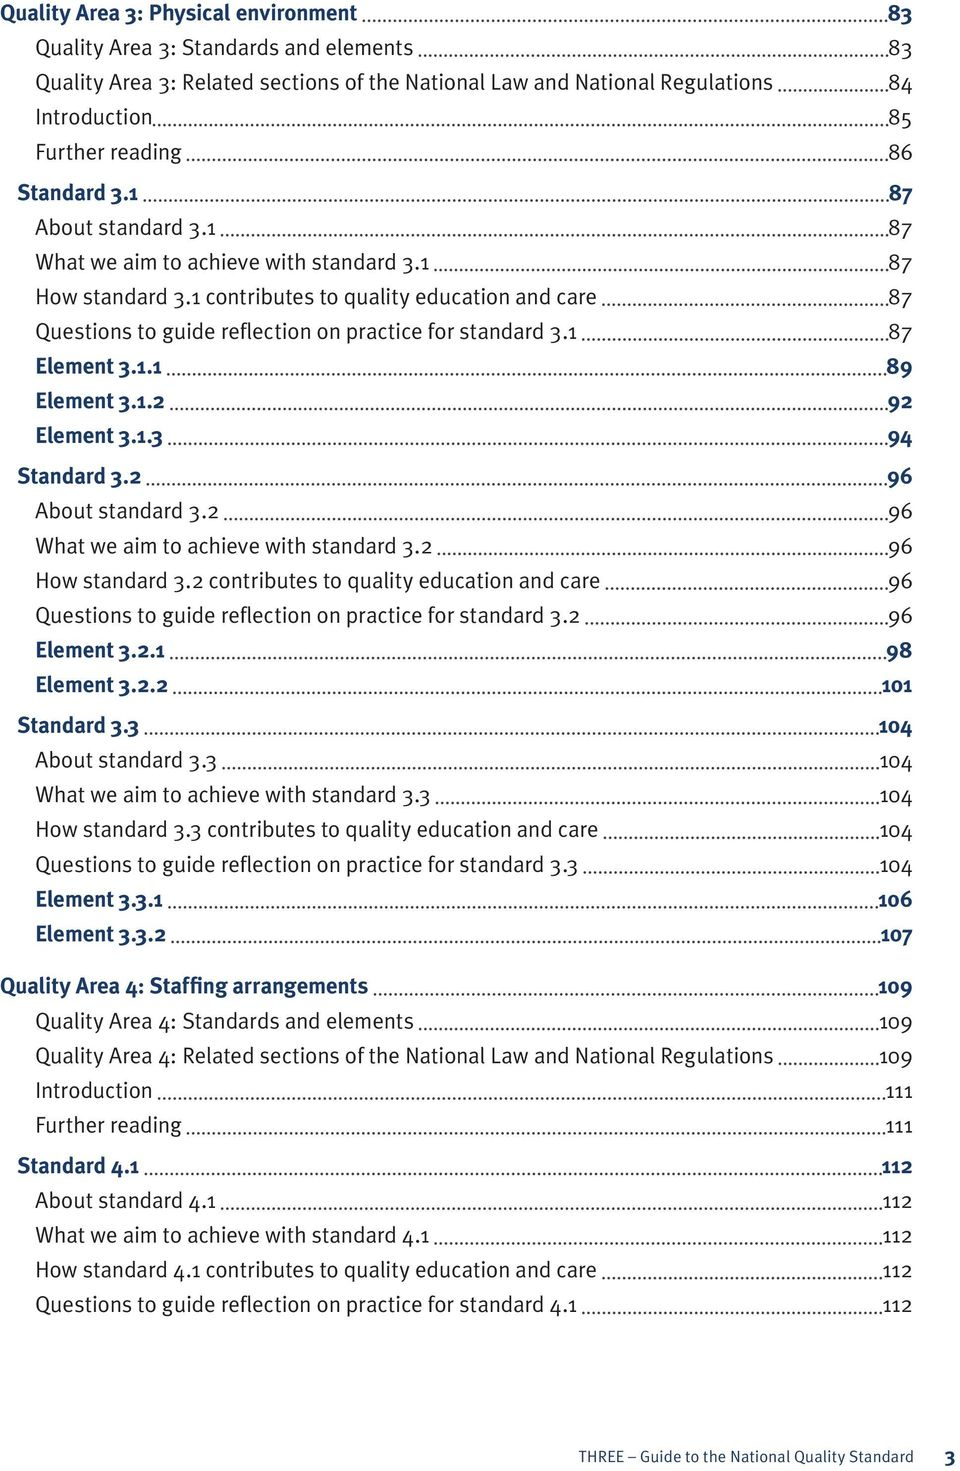 1 contributes to quality education and care 87 Questions to guide reflection on practice for standard 3.1 87 Element 3.1.1 89 Element 3.1.2 92 Element 3.1.3 94 Standard 3.2 96 About standard 3.